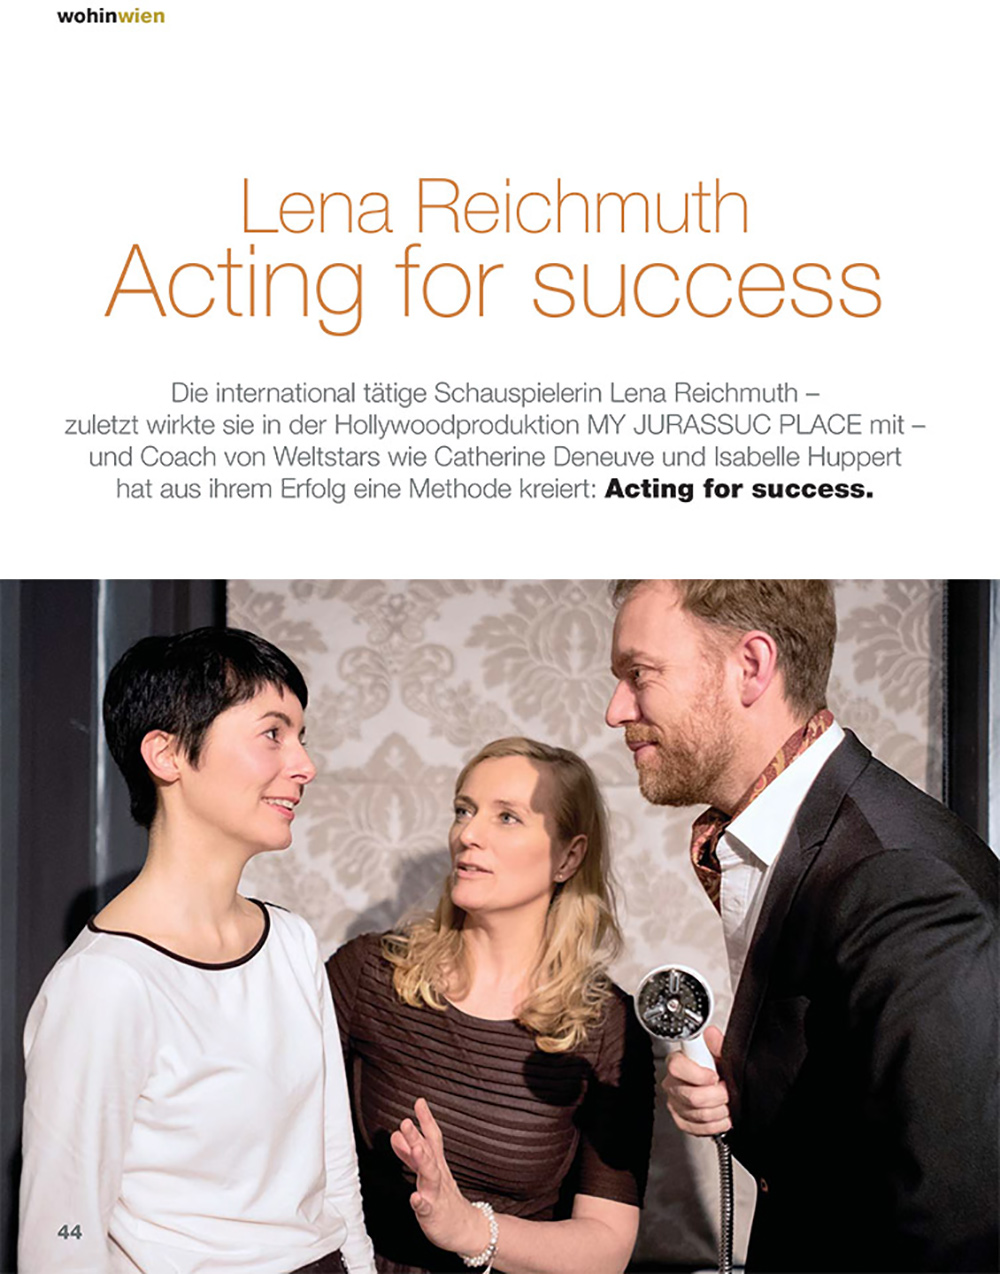 "ACTING FOR SUCCESS by Lena Reichmuth - ""wohin wien"""